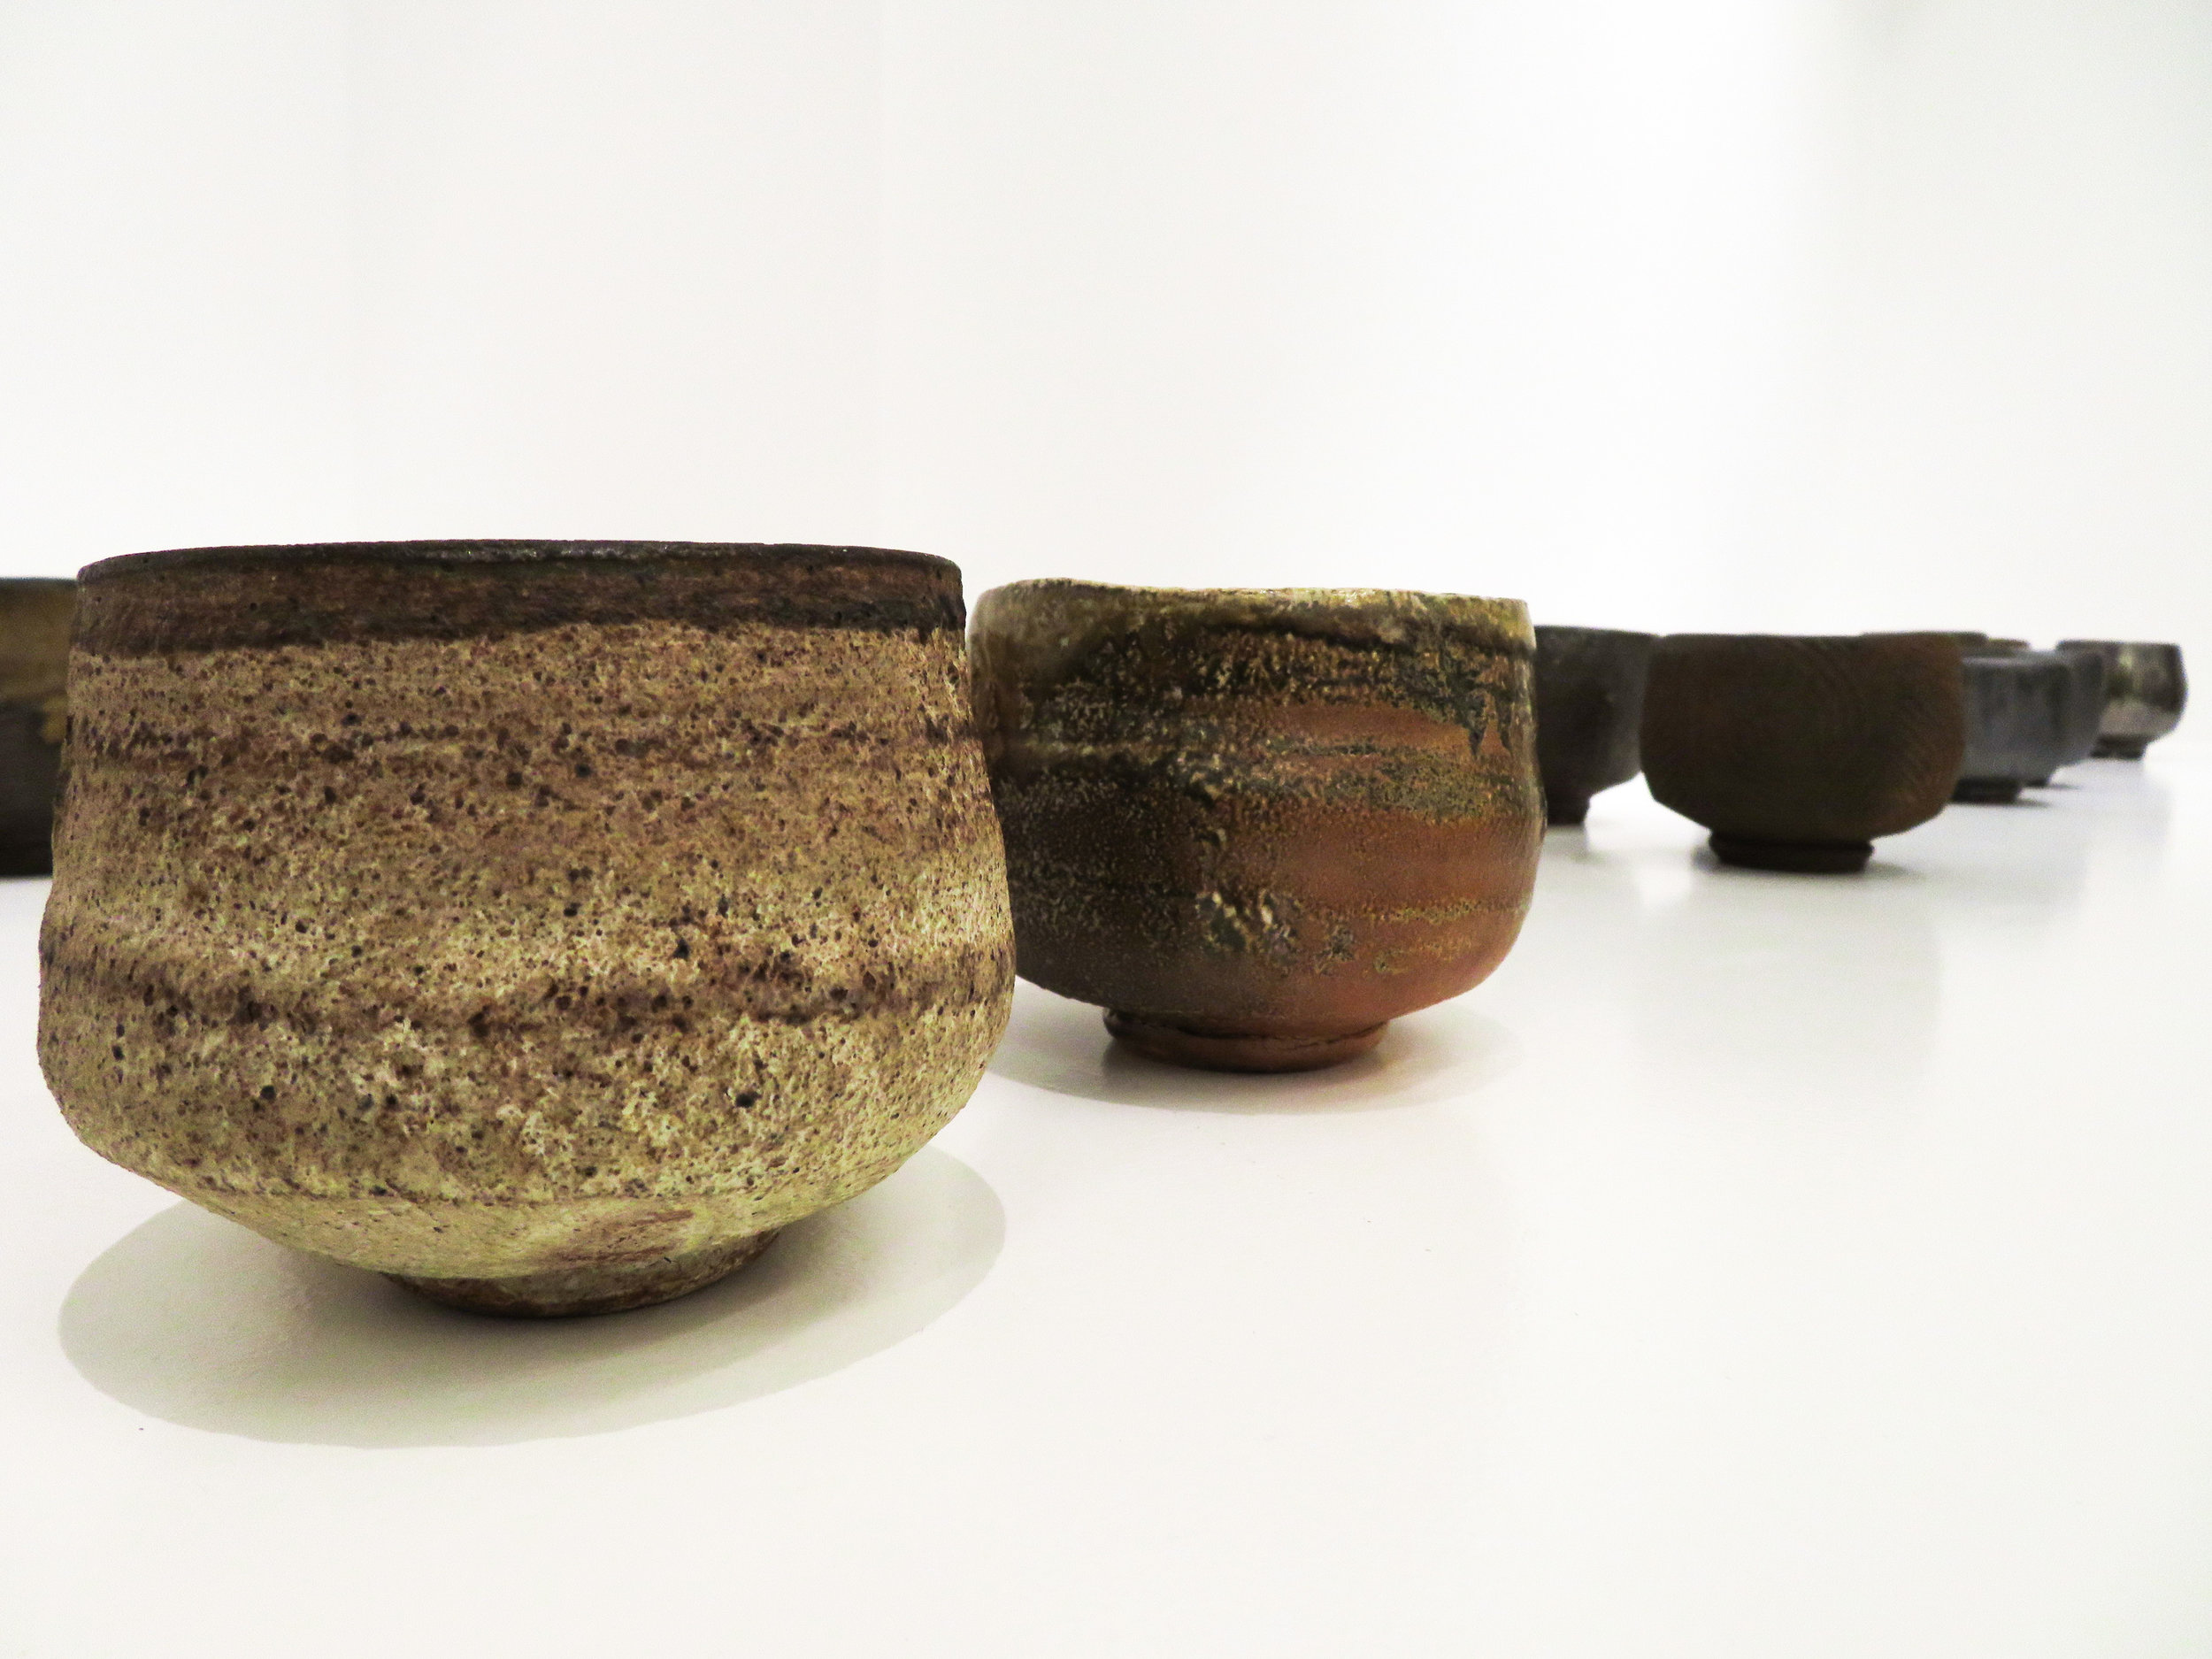 Salt glazed wood-fired stoneware  Photo credit: Courtesy of Galleri Format